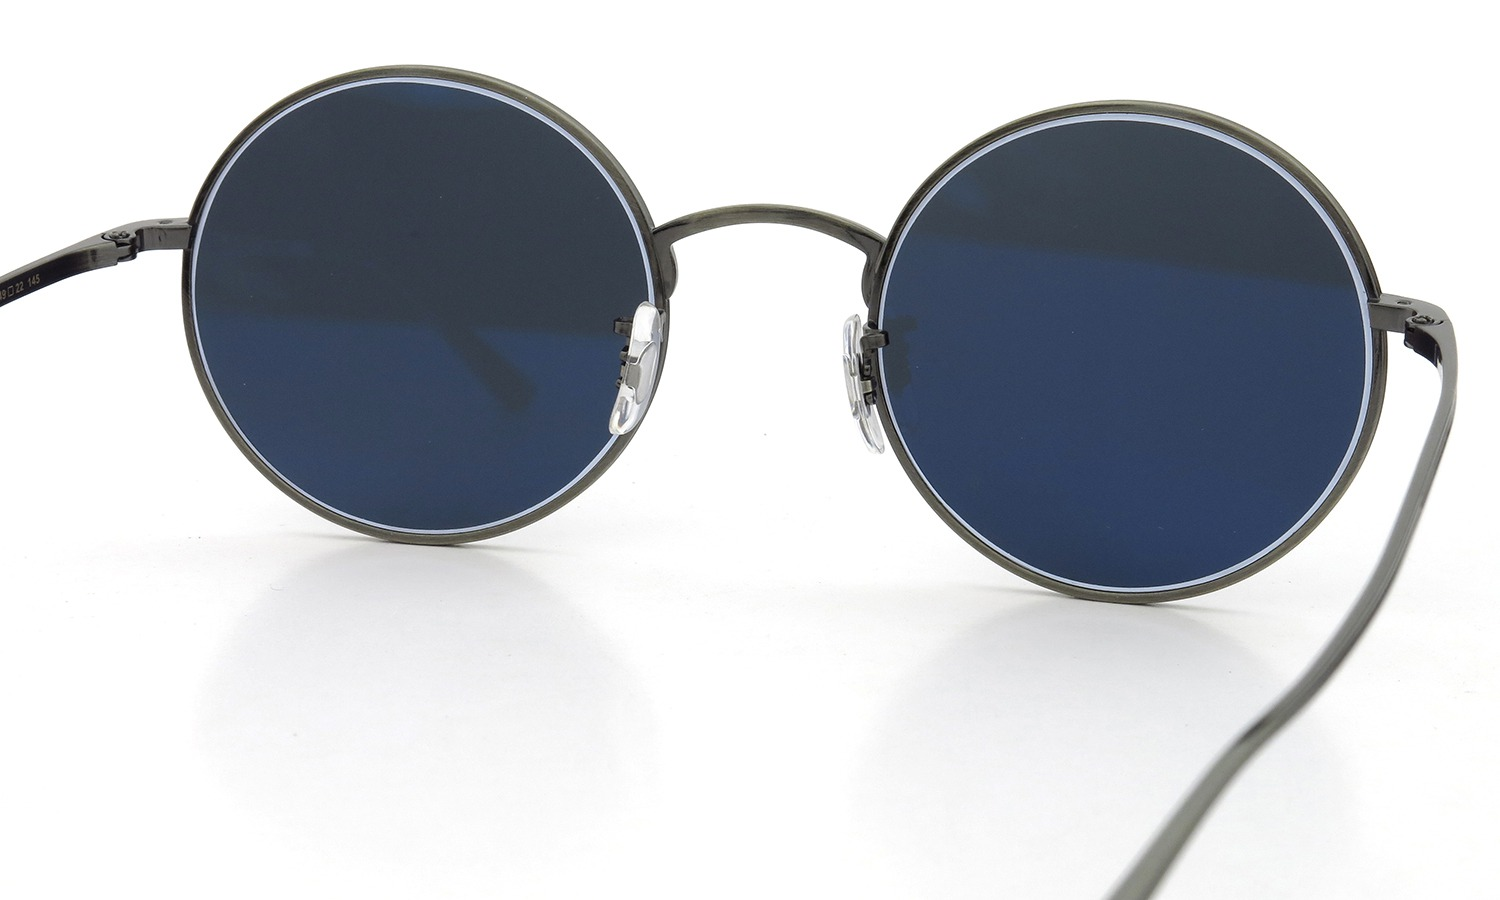 OLIVER PEOPLES × THE ROW サングラス AFTER MIDNIGHT col.P フラットダークブルーガラスレンズ 49size